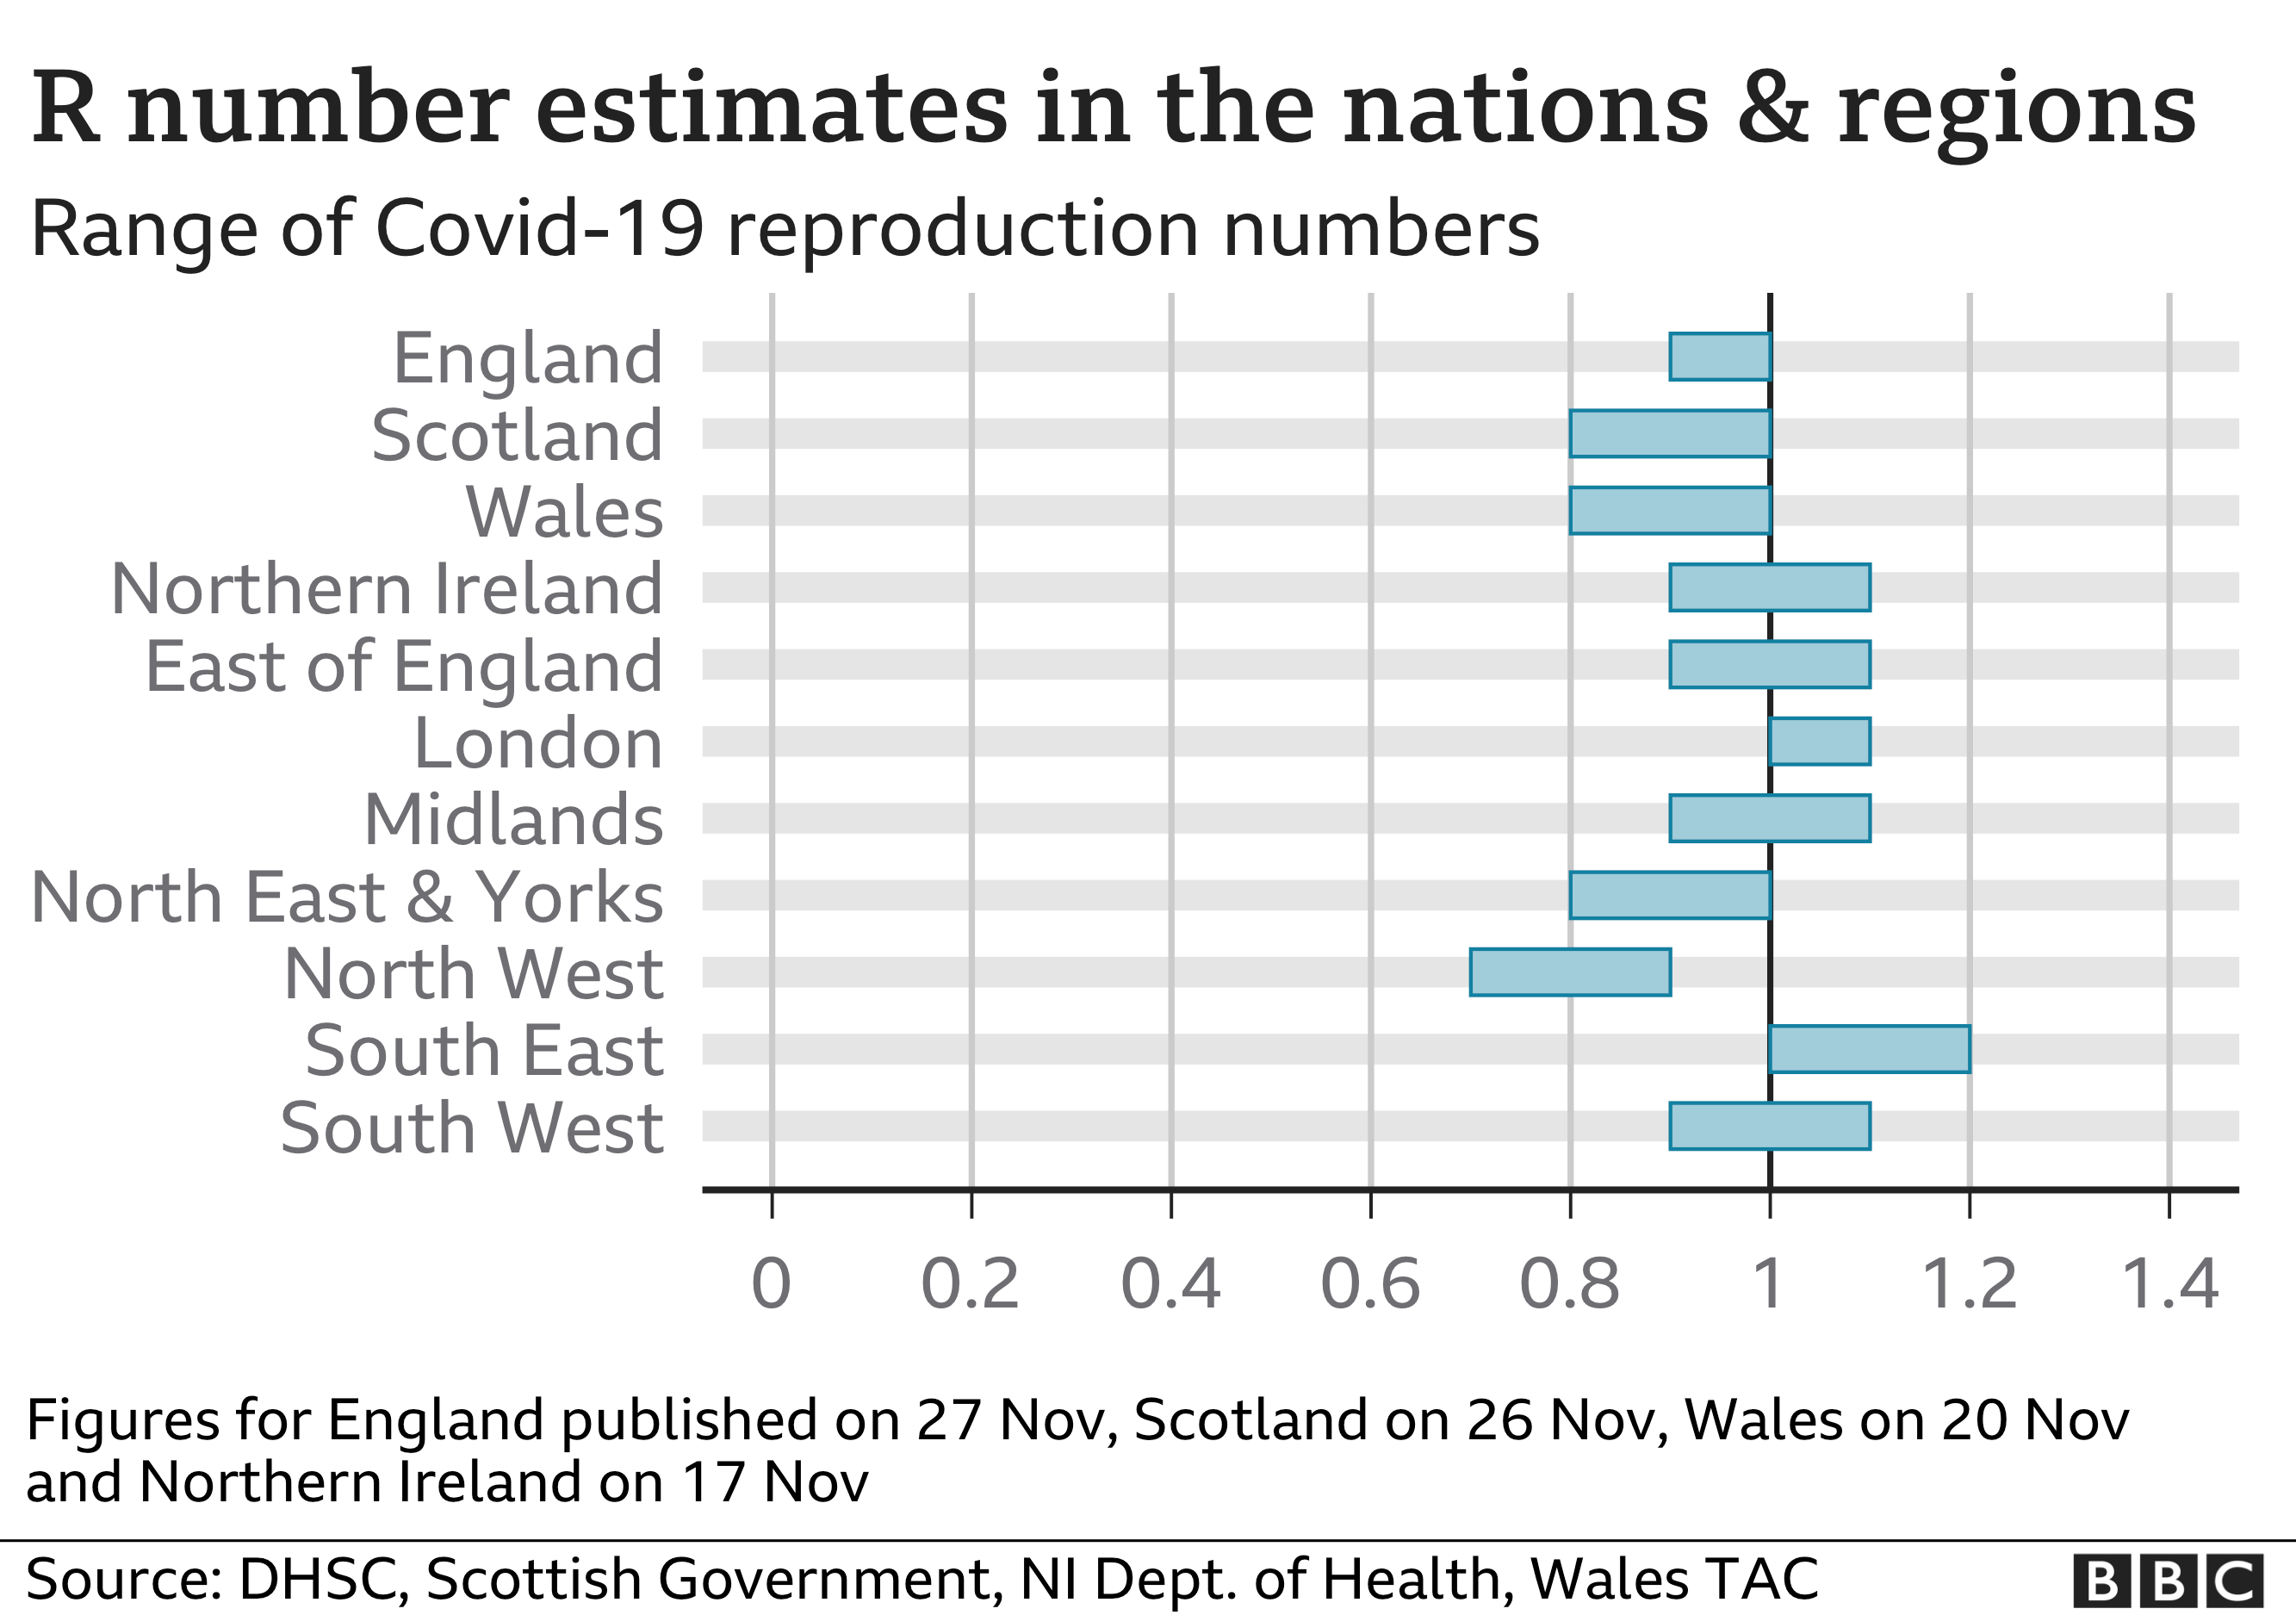 R number estimates for the UK